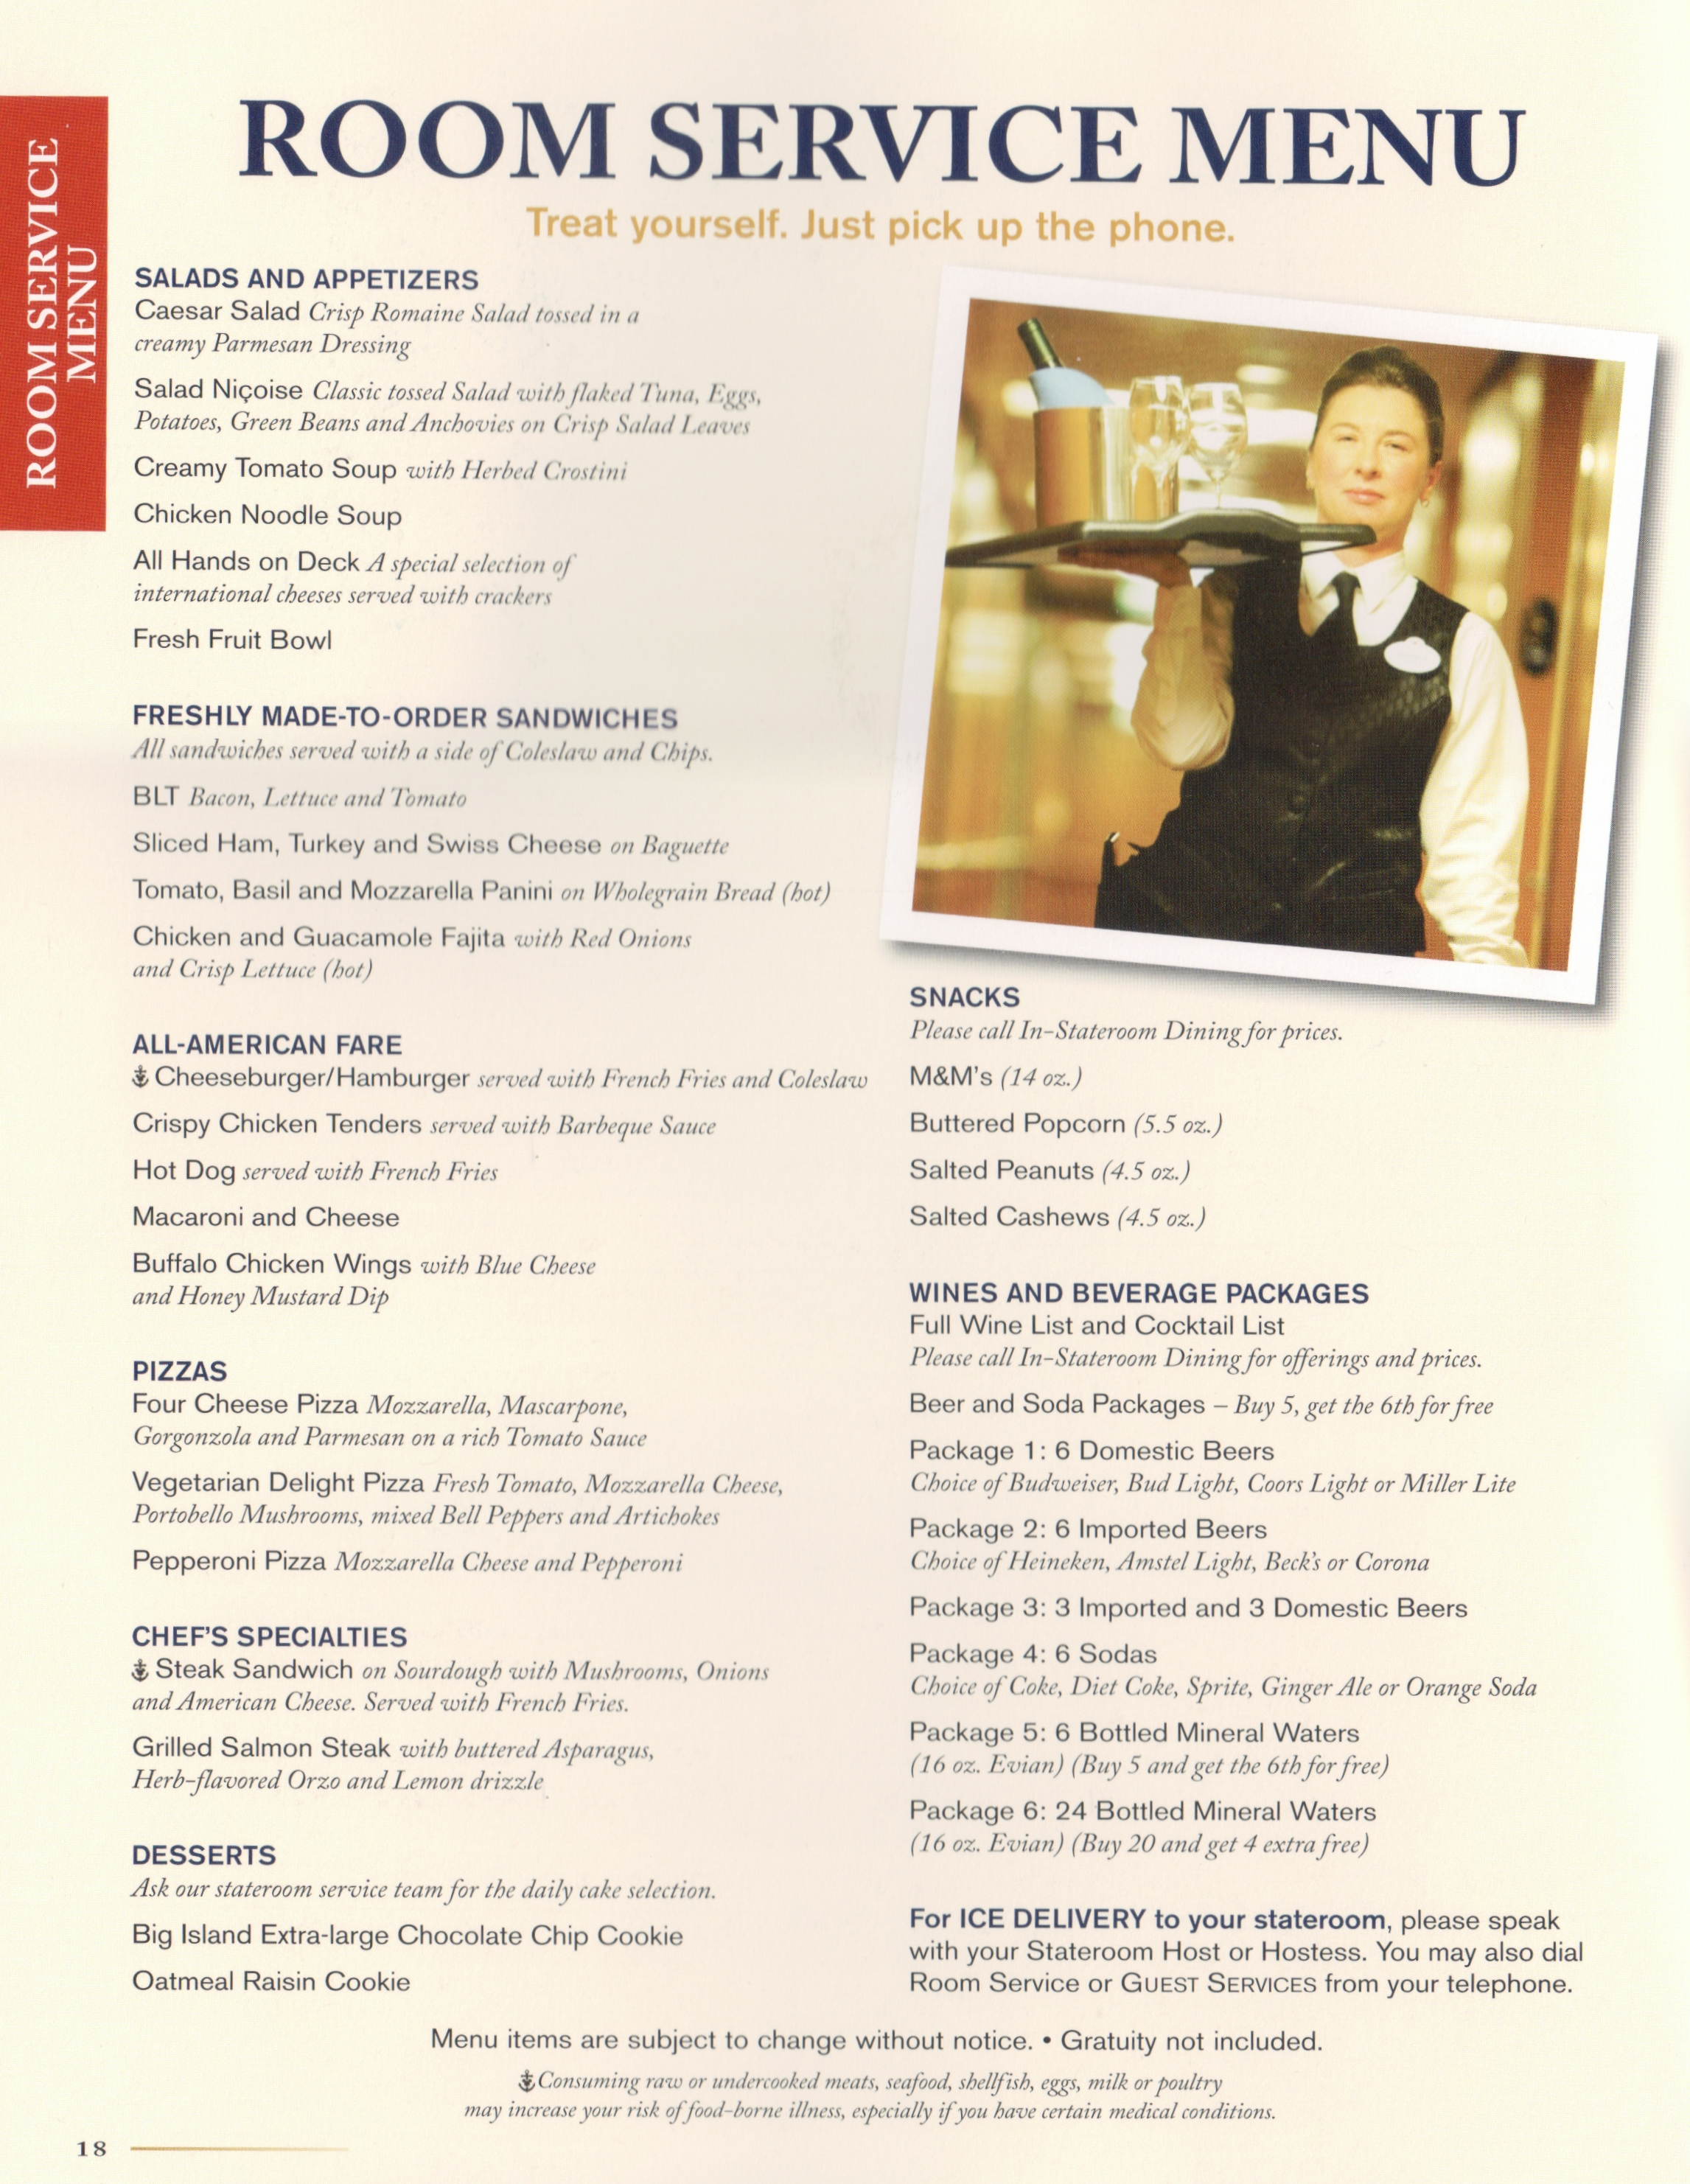 Disney Wonder Room Service Menu